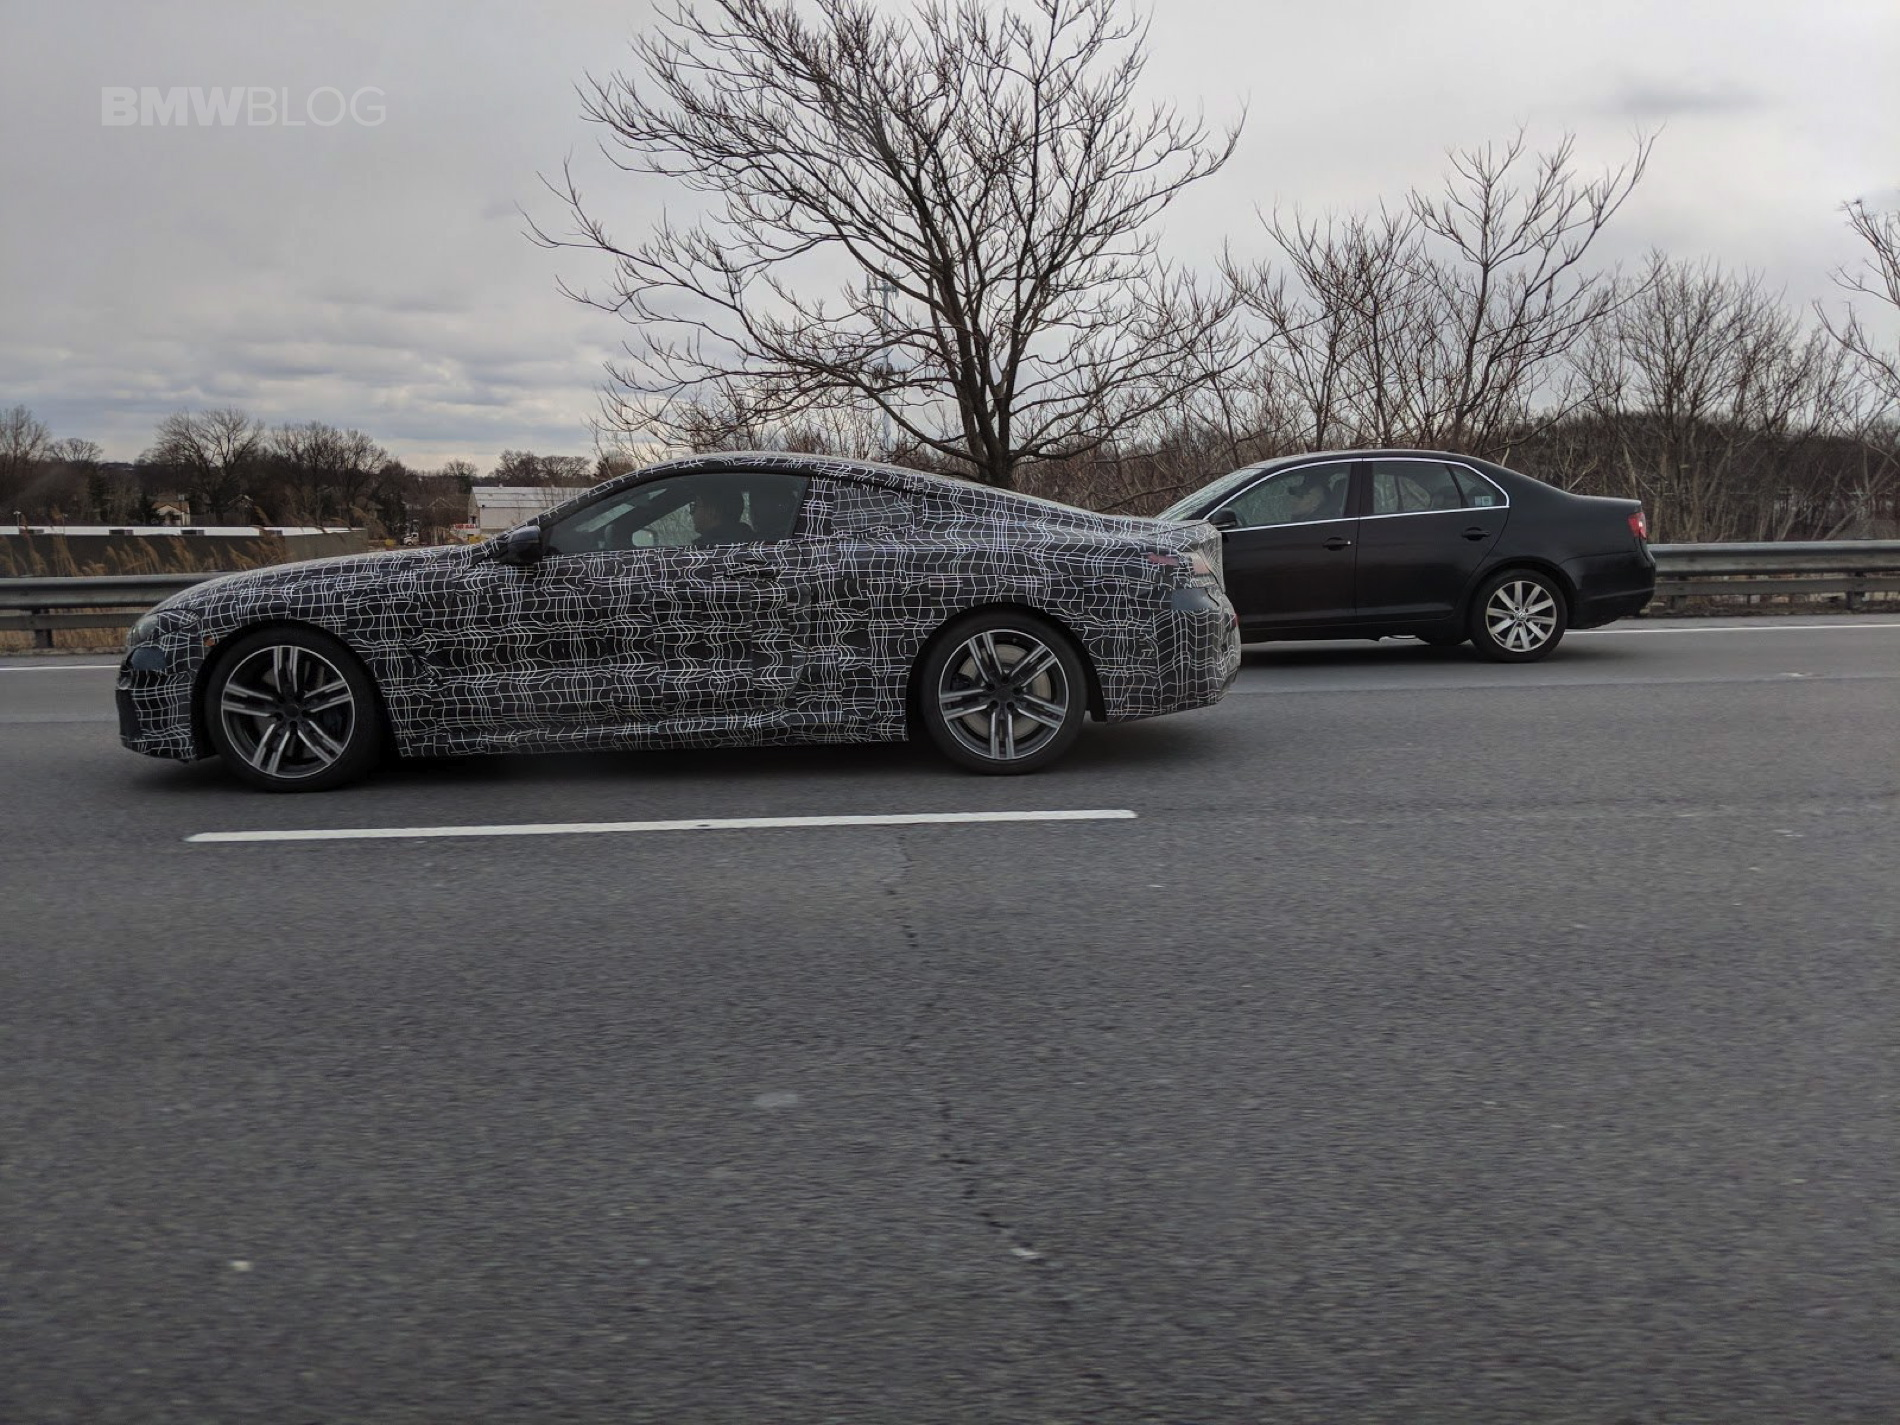 Upcoming Bmw 8 Series Coupe Spotted In New Jersey